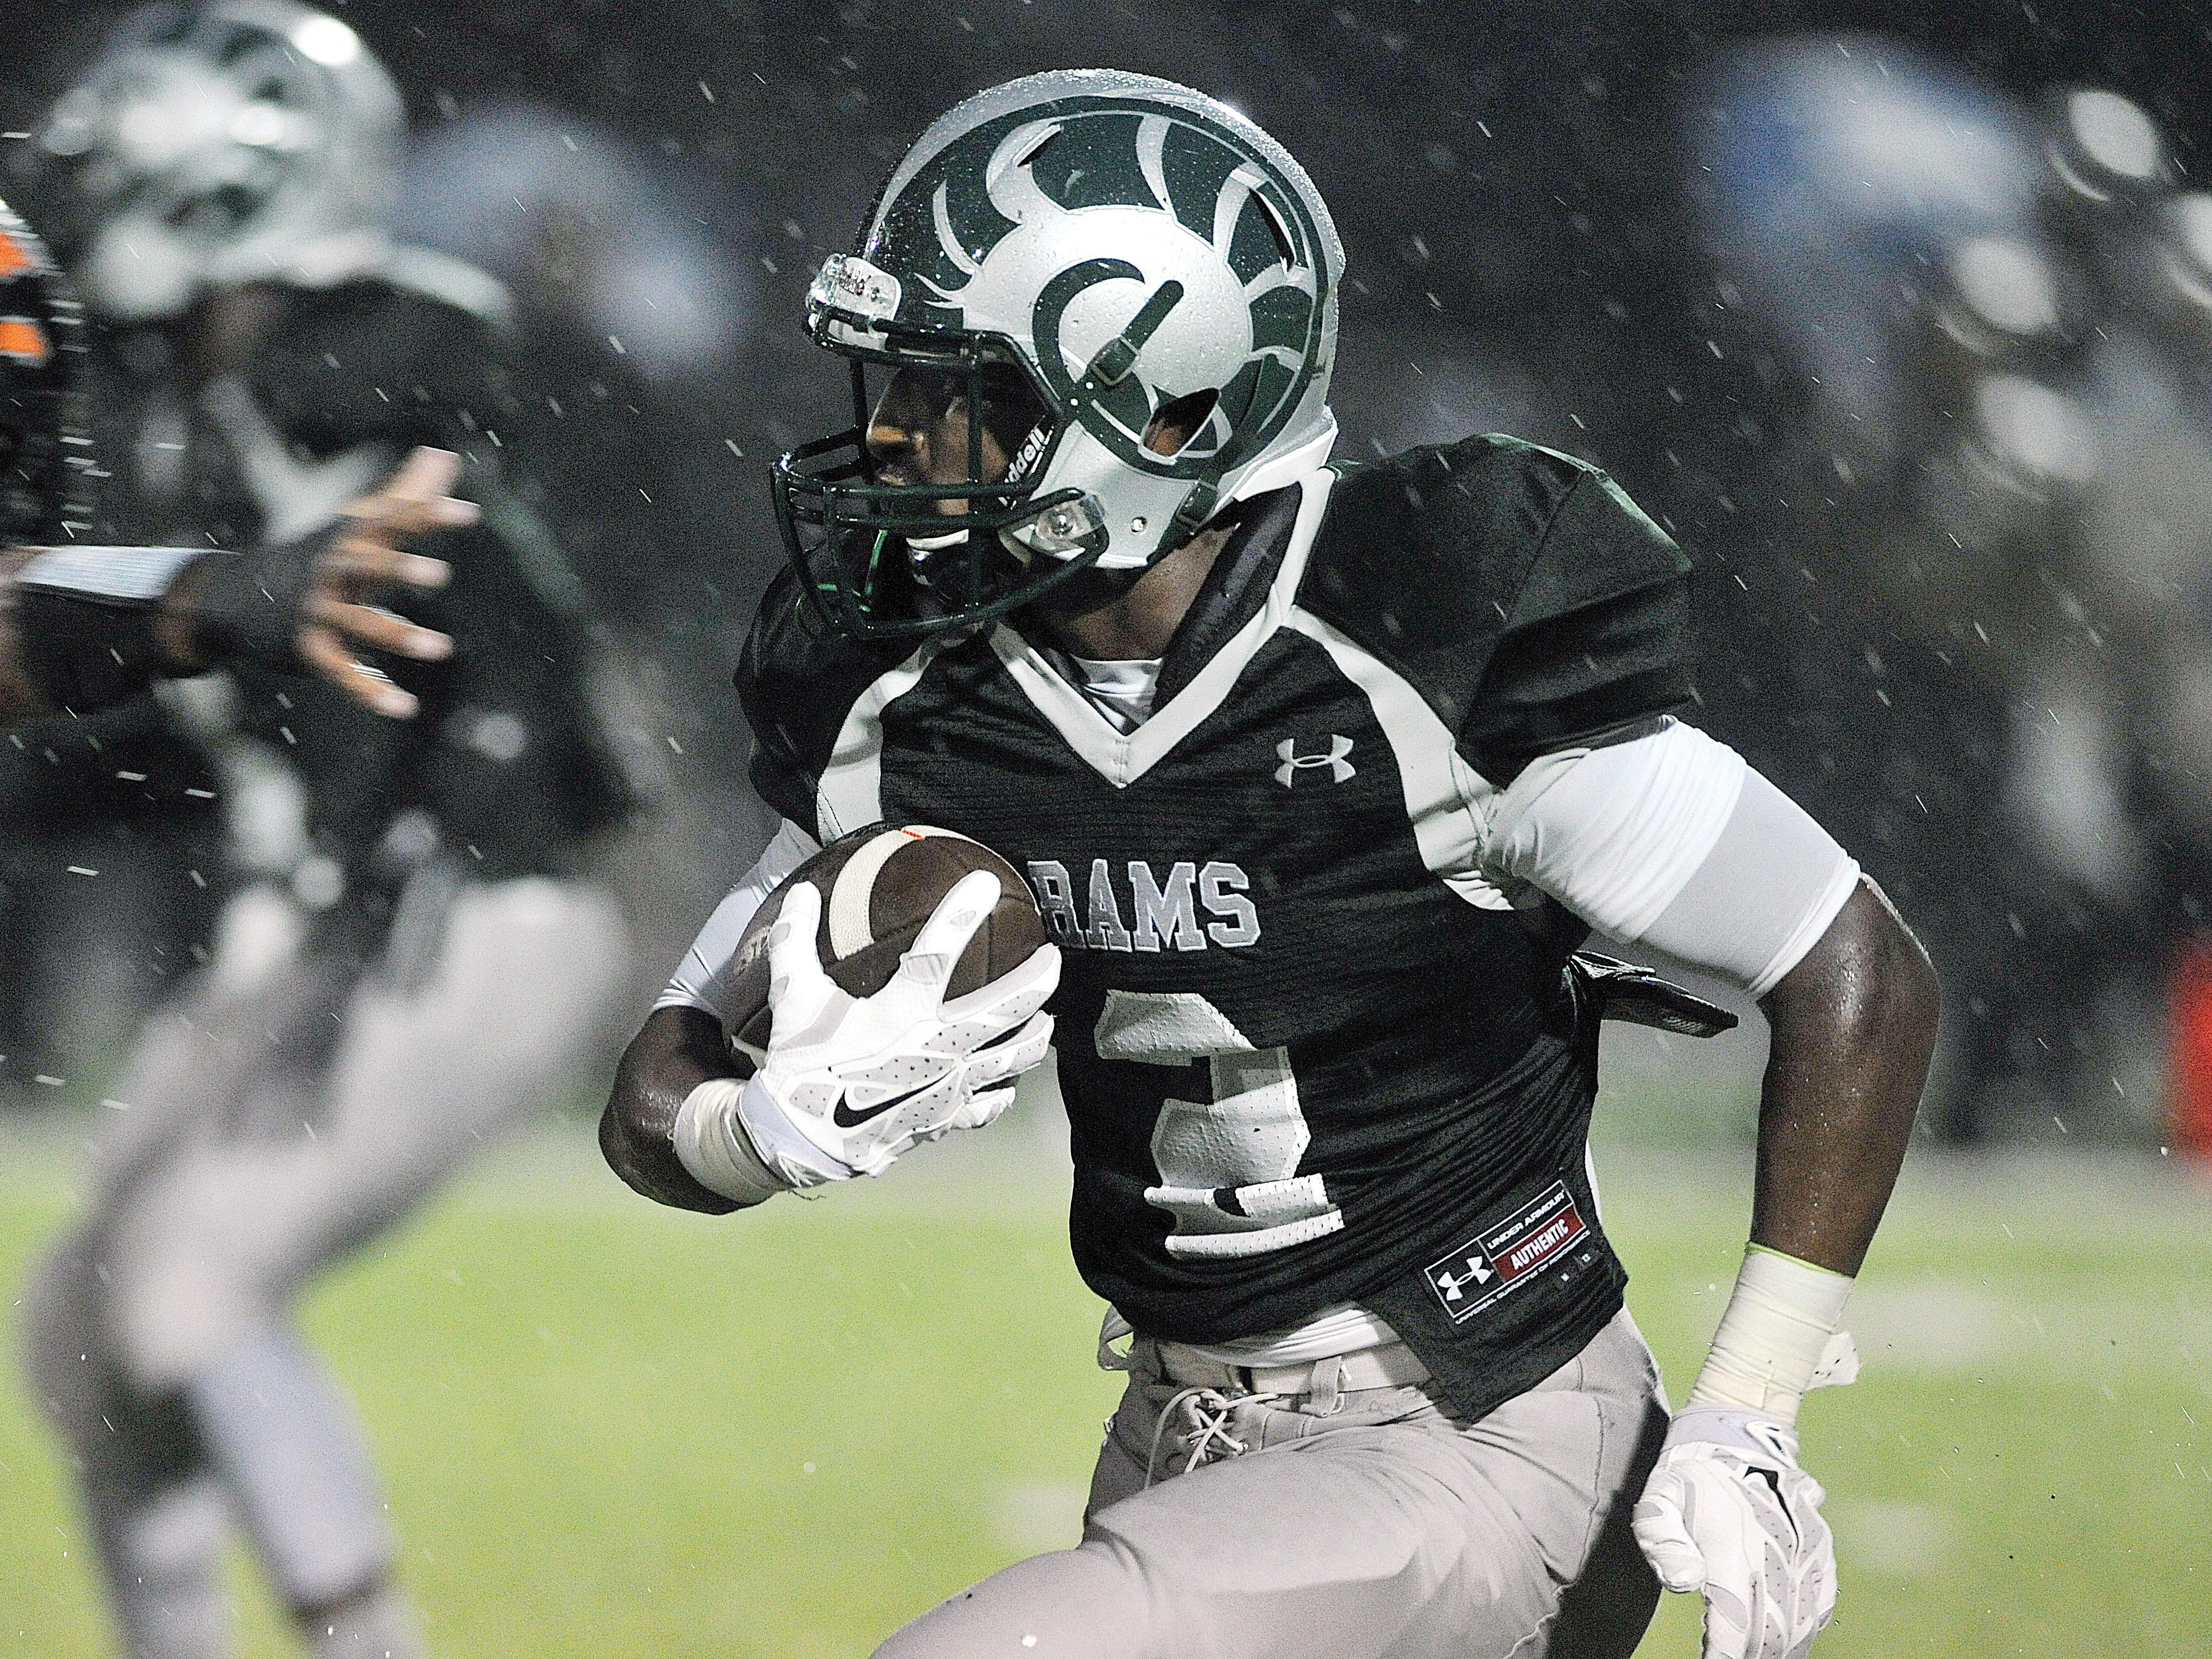 Madison's Tyrell Ajian makes a run during their game against Mount Vernon. Ajian was named second-team All-Ohio as a wide receiver.